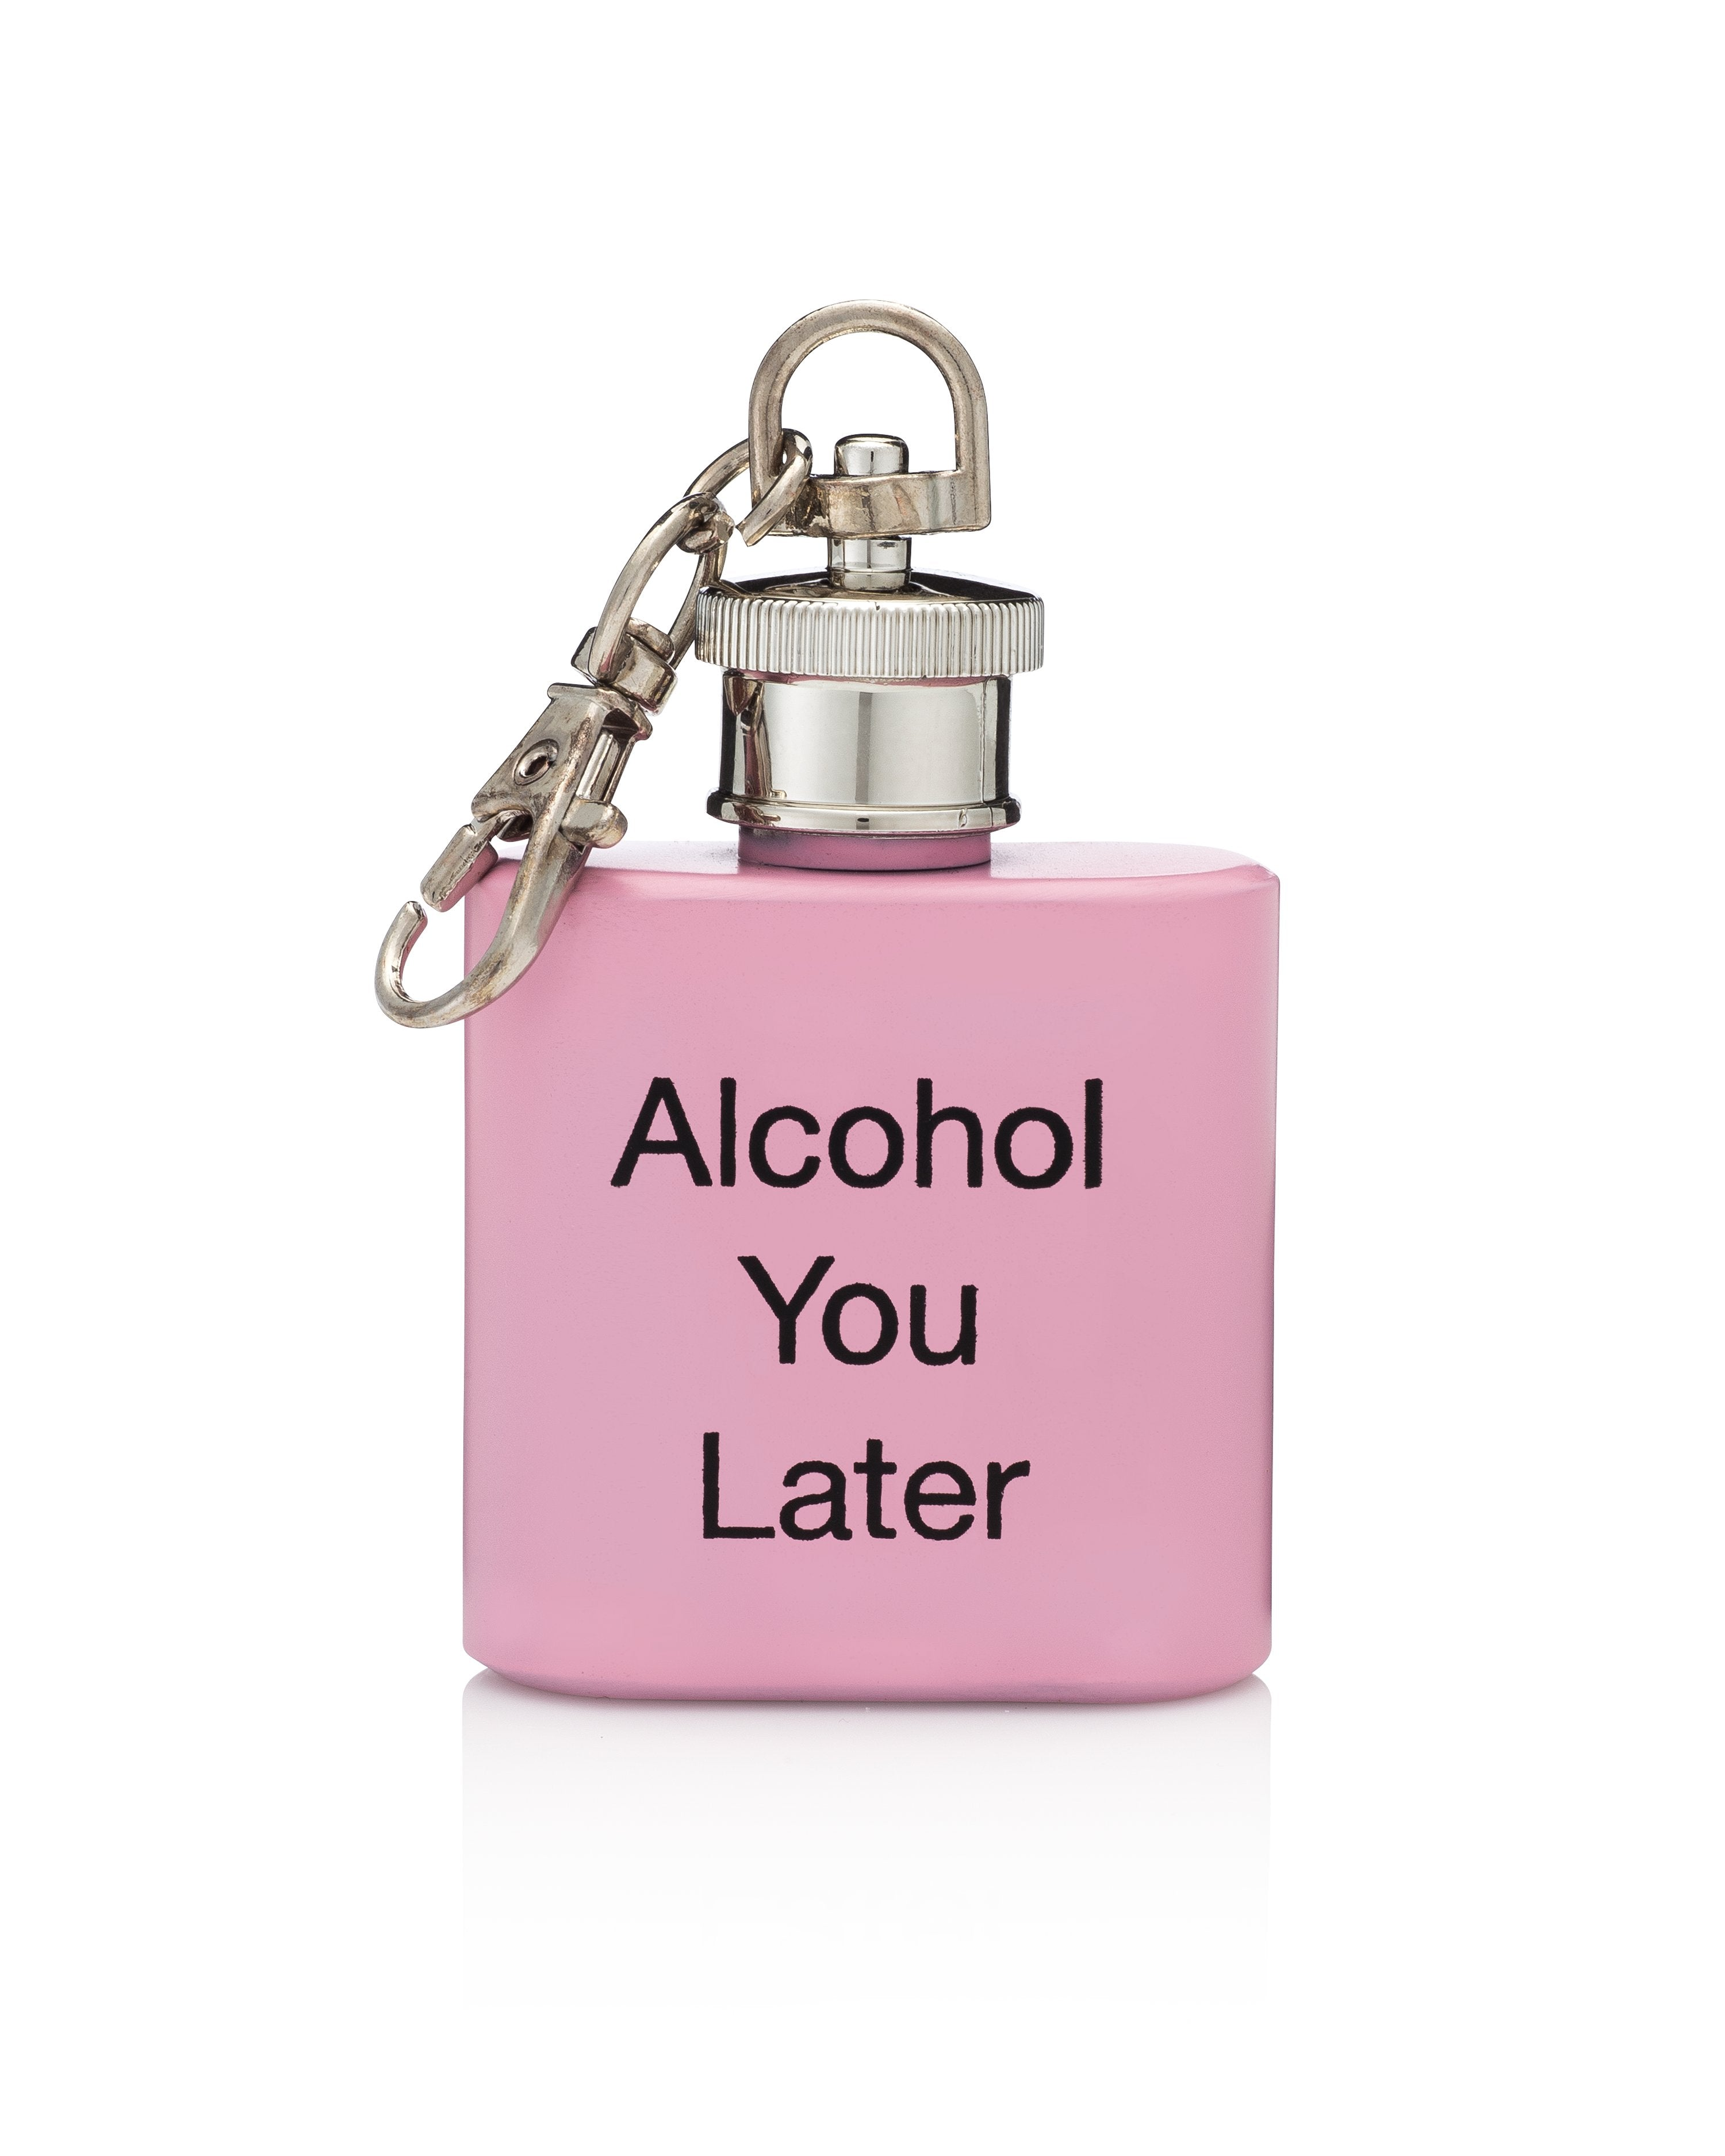 Alcohol You Later Flask Keychain